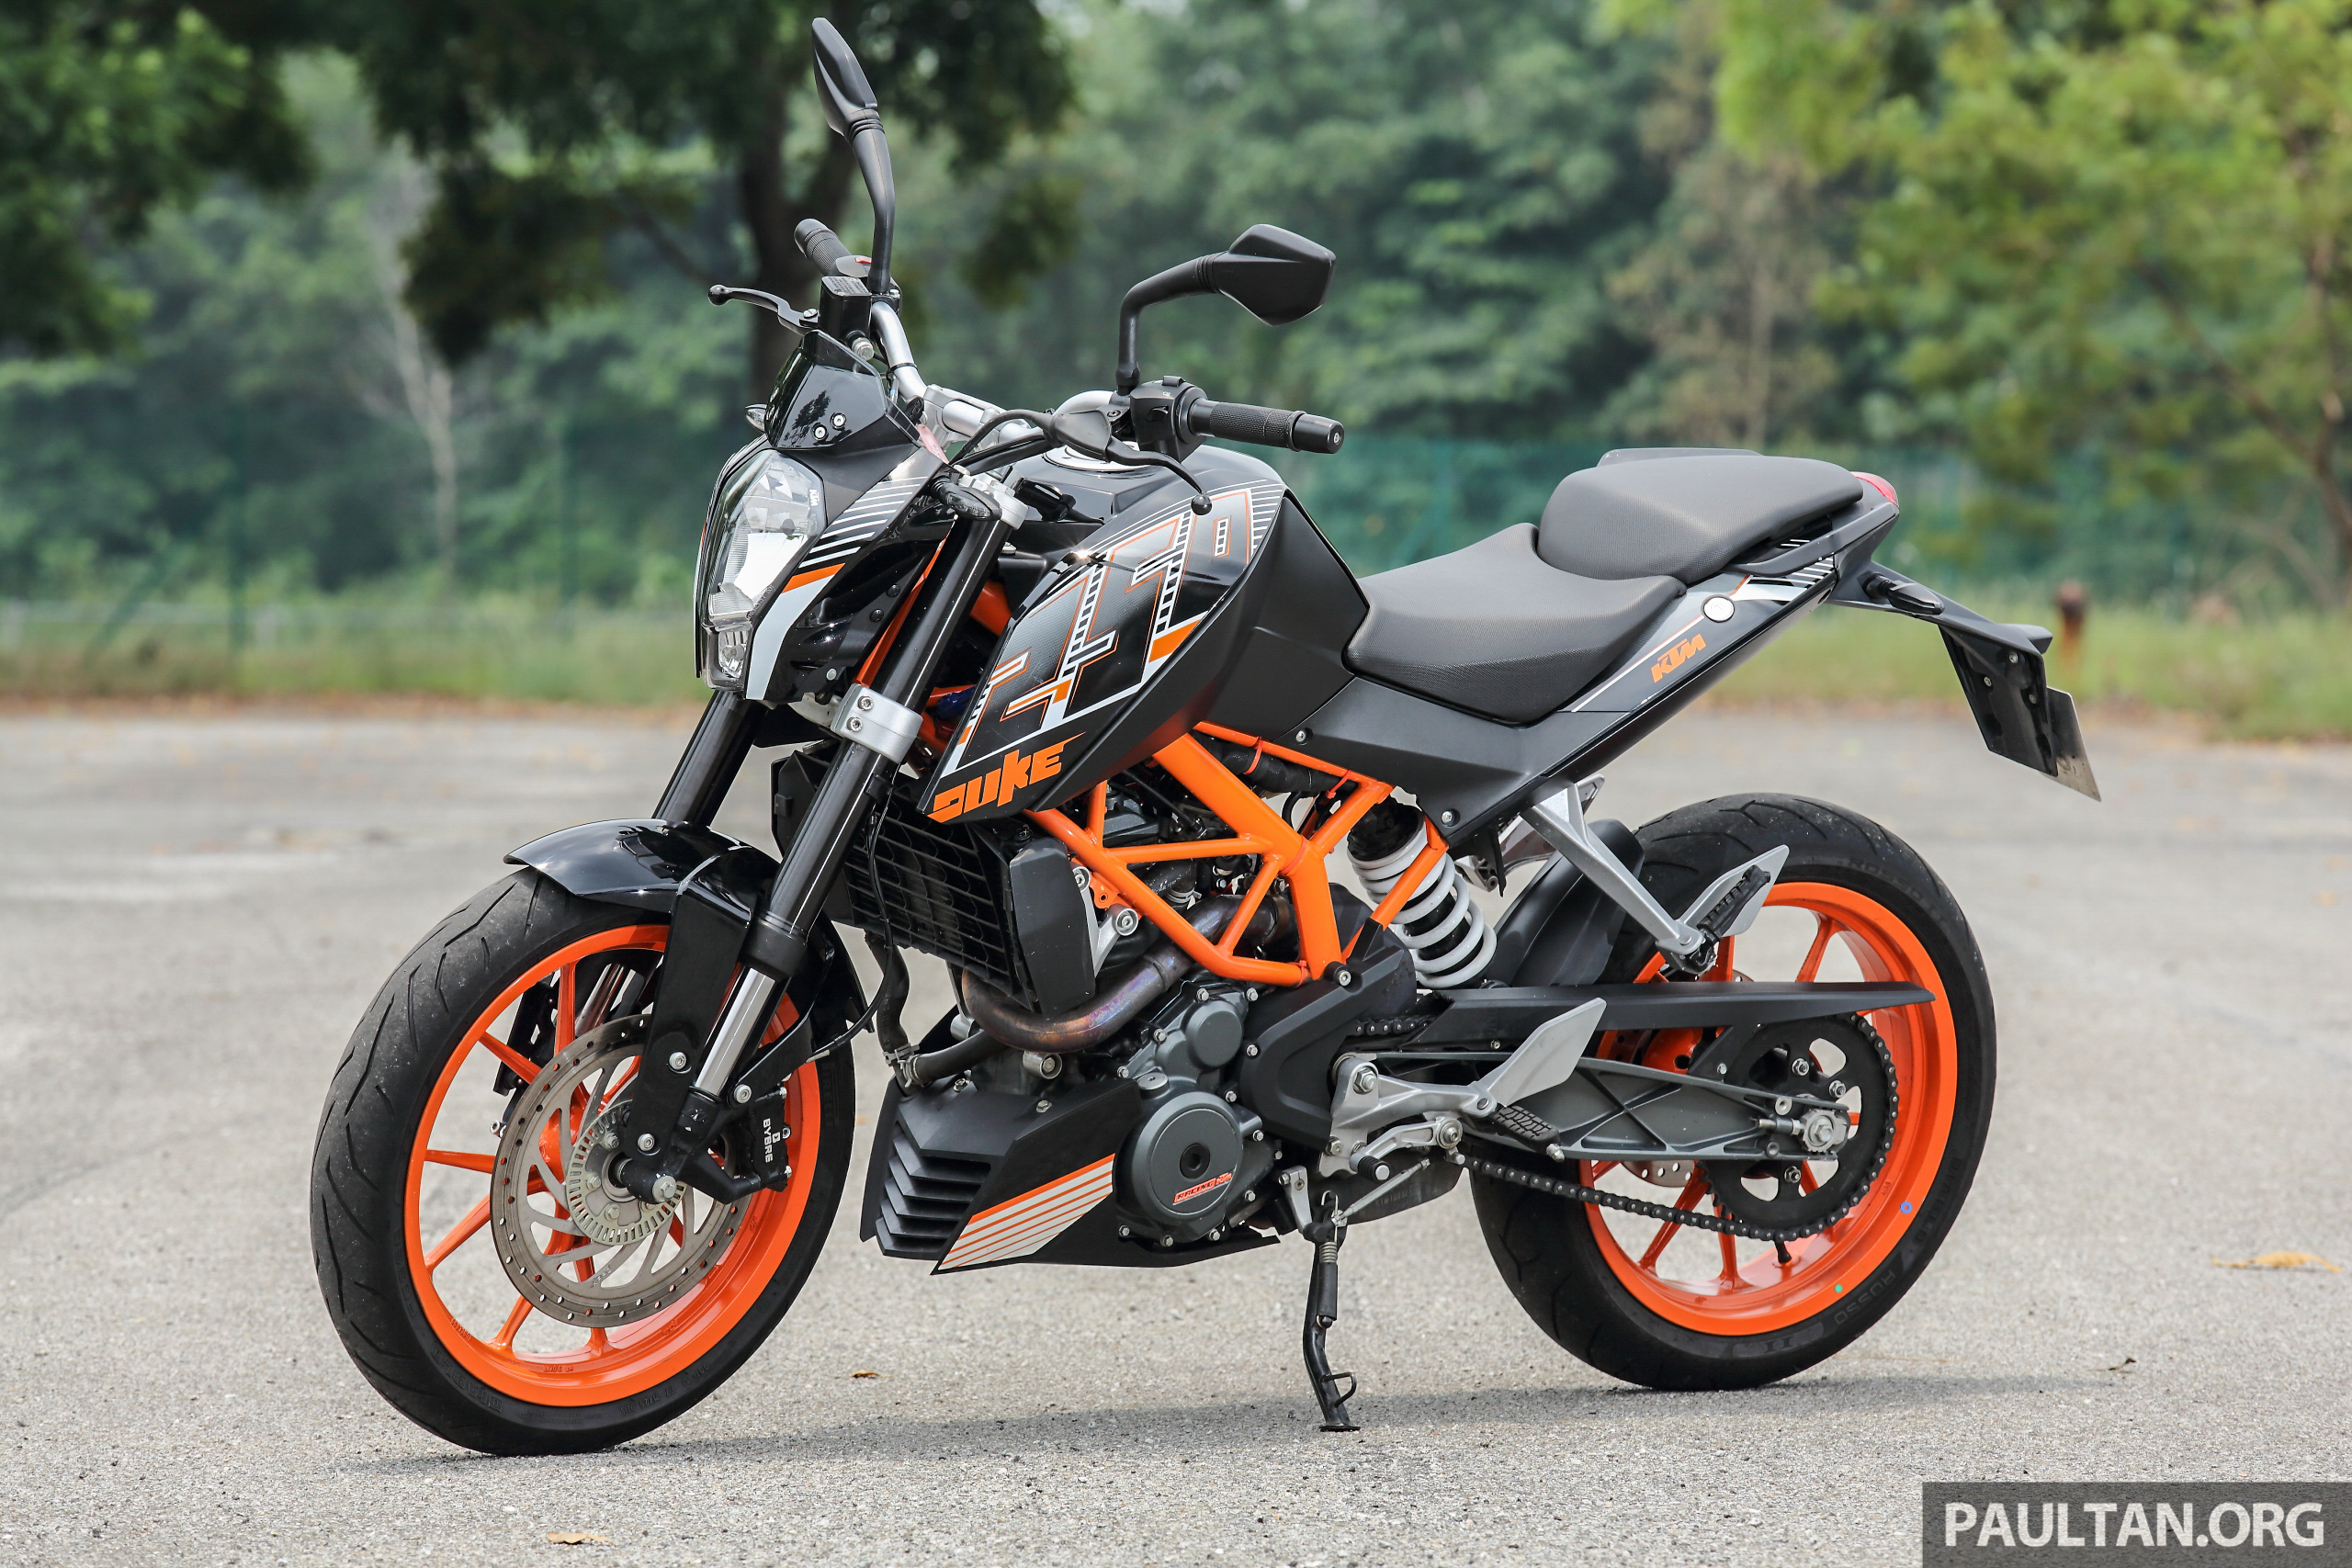 review 2016 ktm duke 250 and rc250 good handling and good looks at an entry level price image. Black Bedroom Furniture Sets. Home Design Ideas